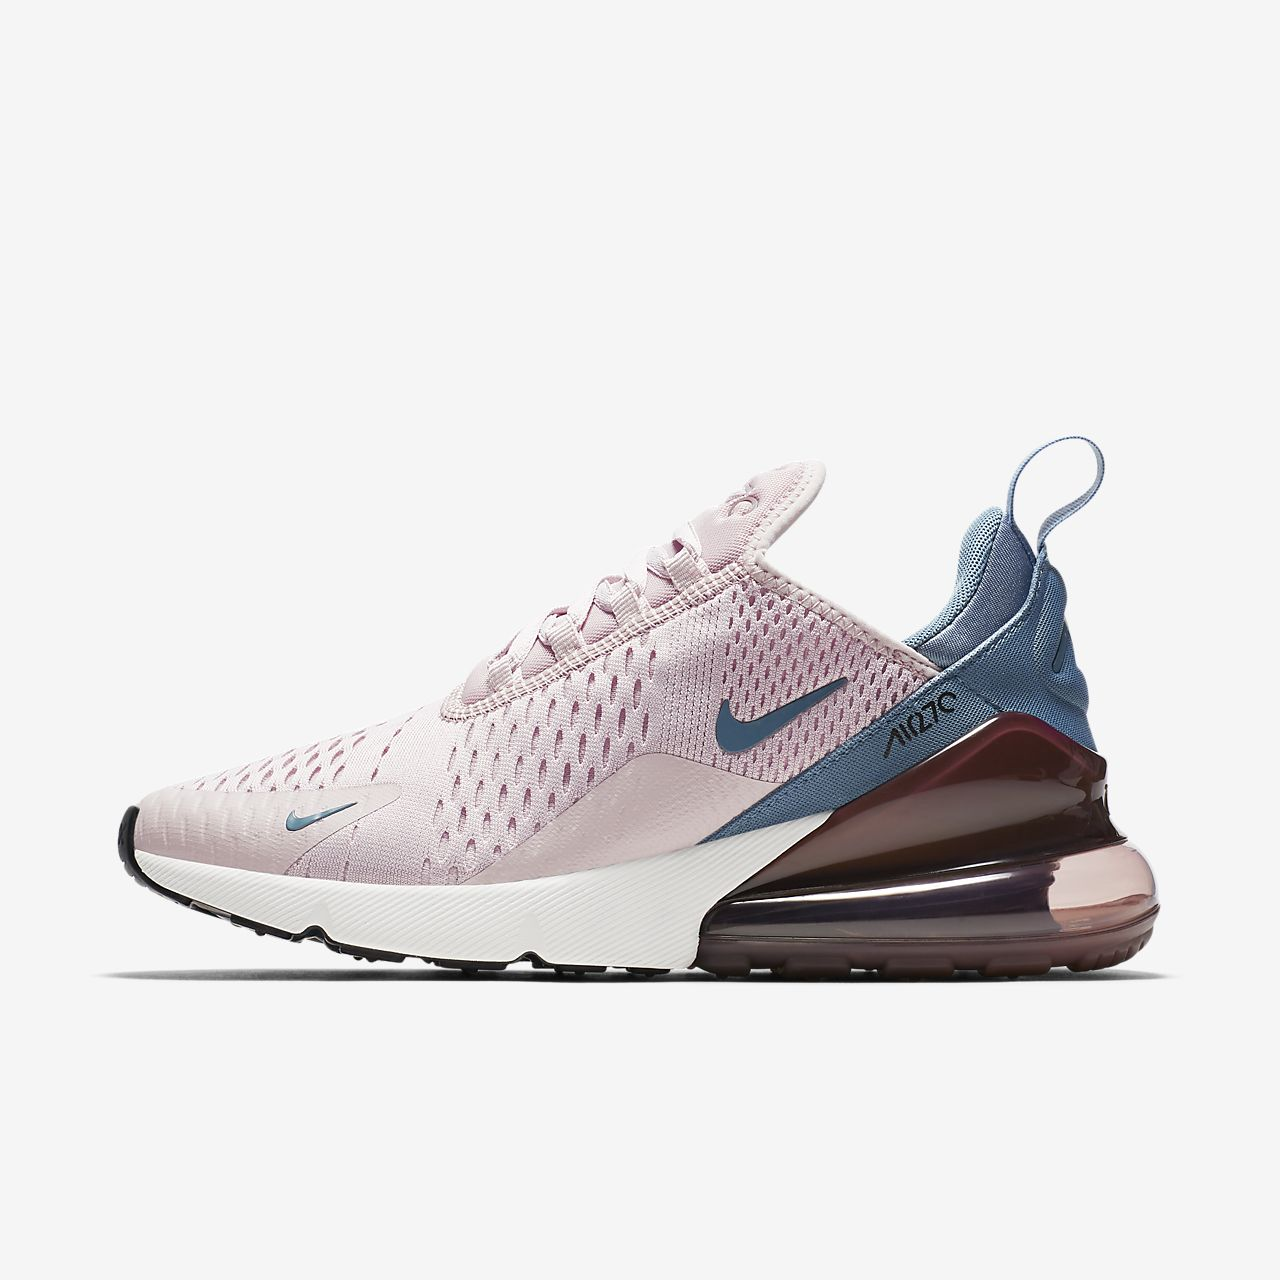 0f6e31ce21c Nike Air Max 270 Women s Shoe. Nike.com